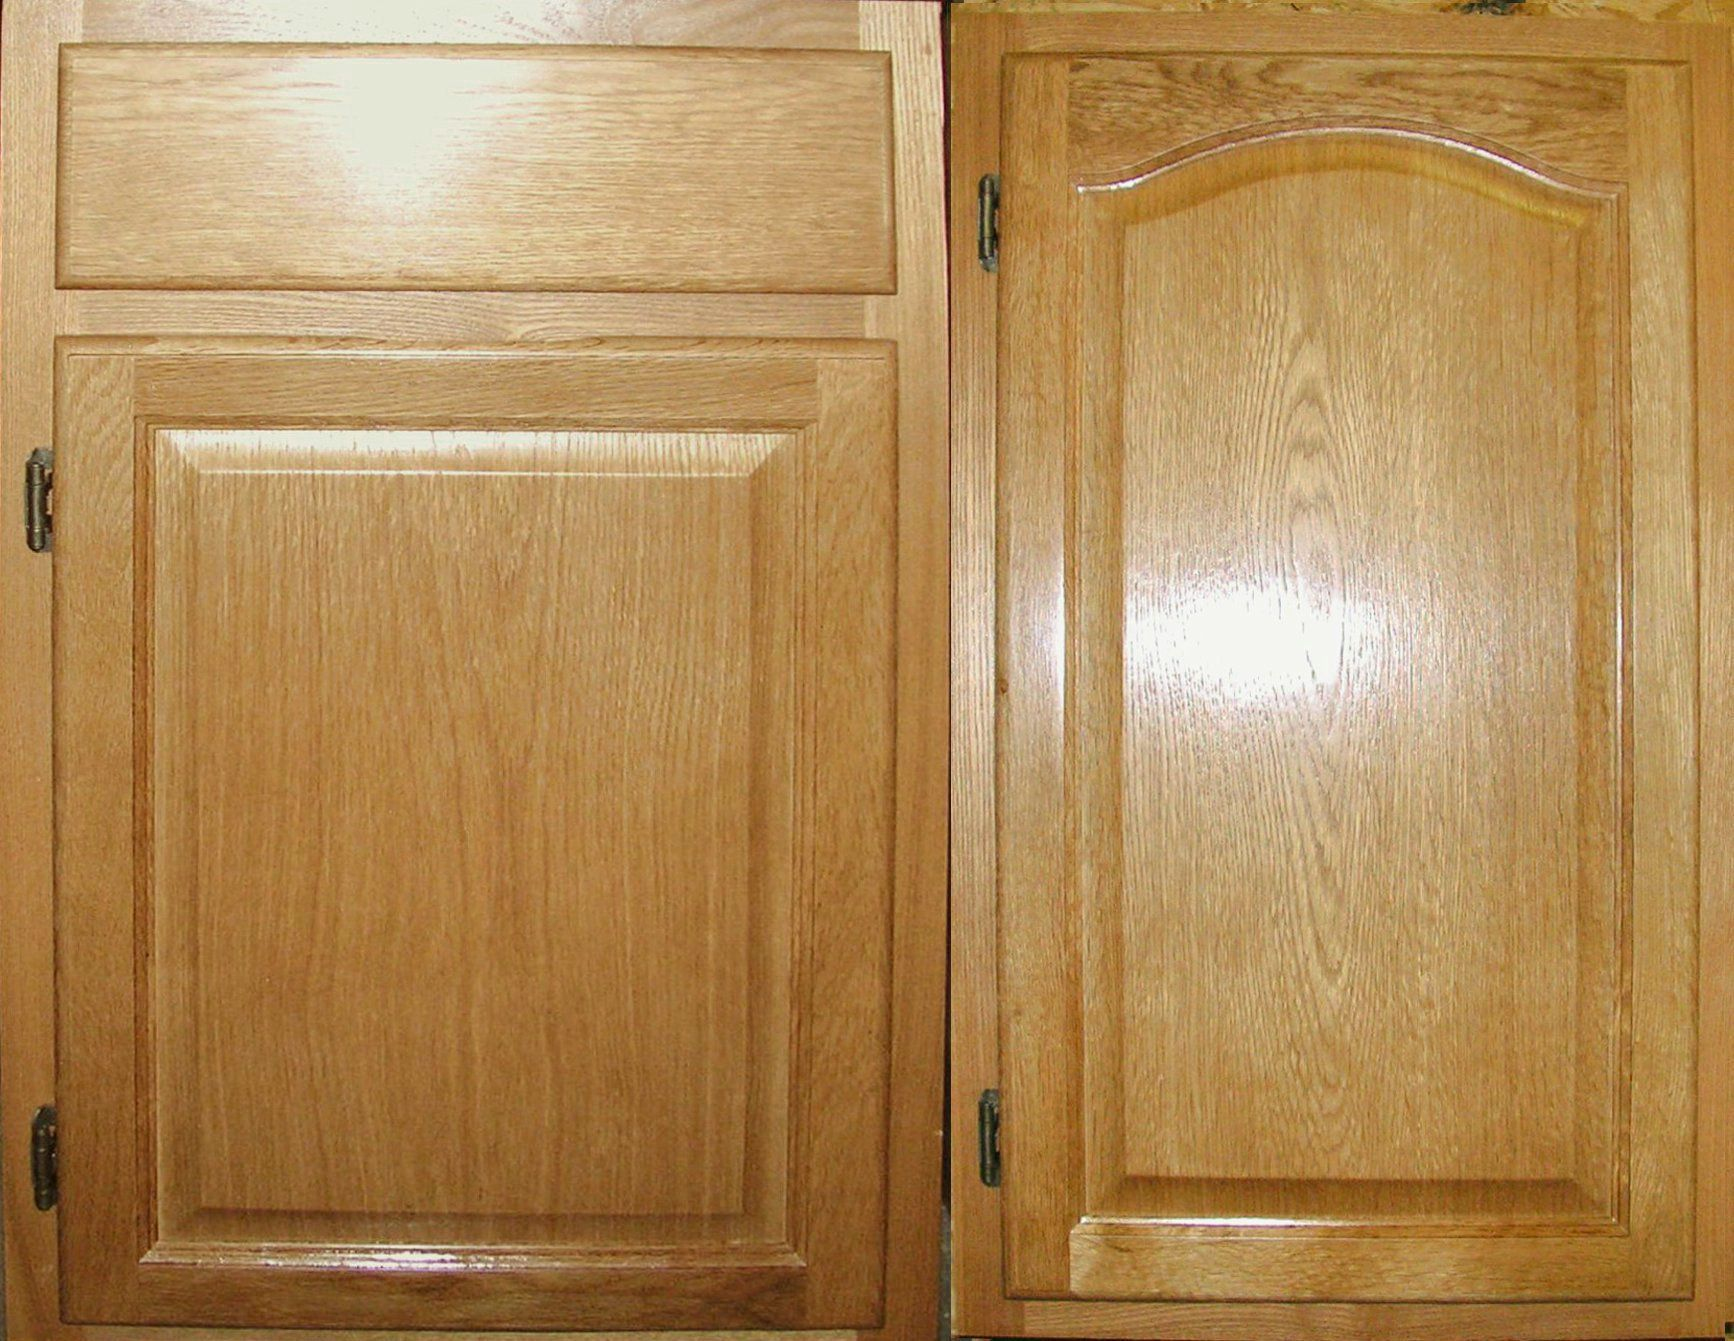 All Wood Raised Panel Arch Uppers Oak Wooden Kitchen Cabinets Unfinished Cabinet Doors Oak Kitchen Cabinets